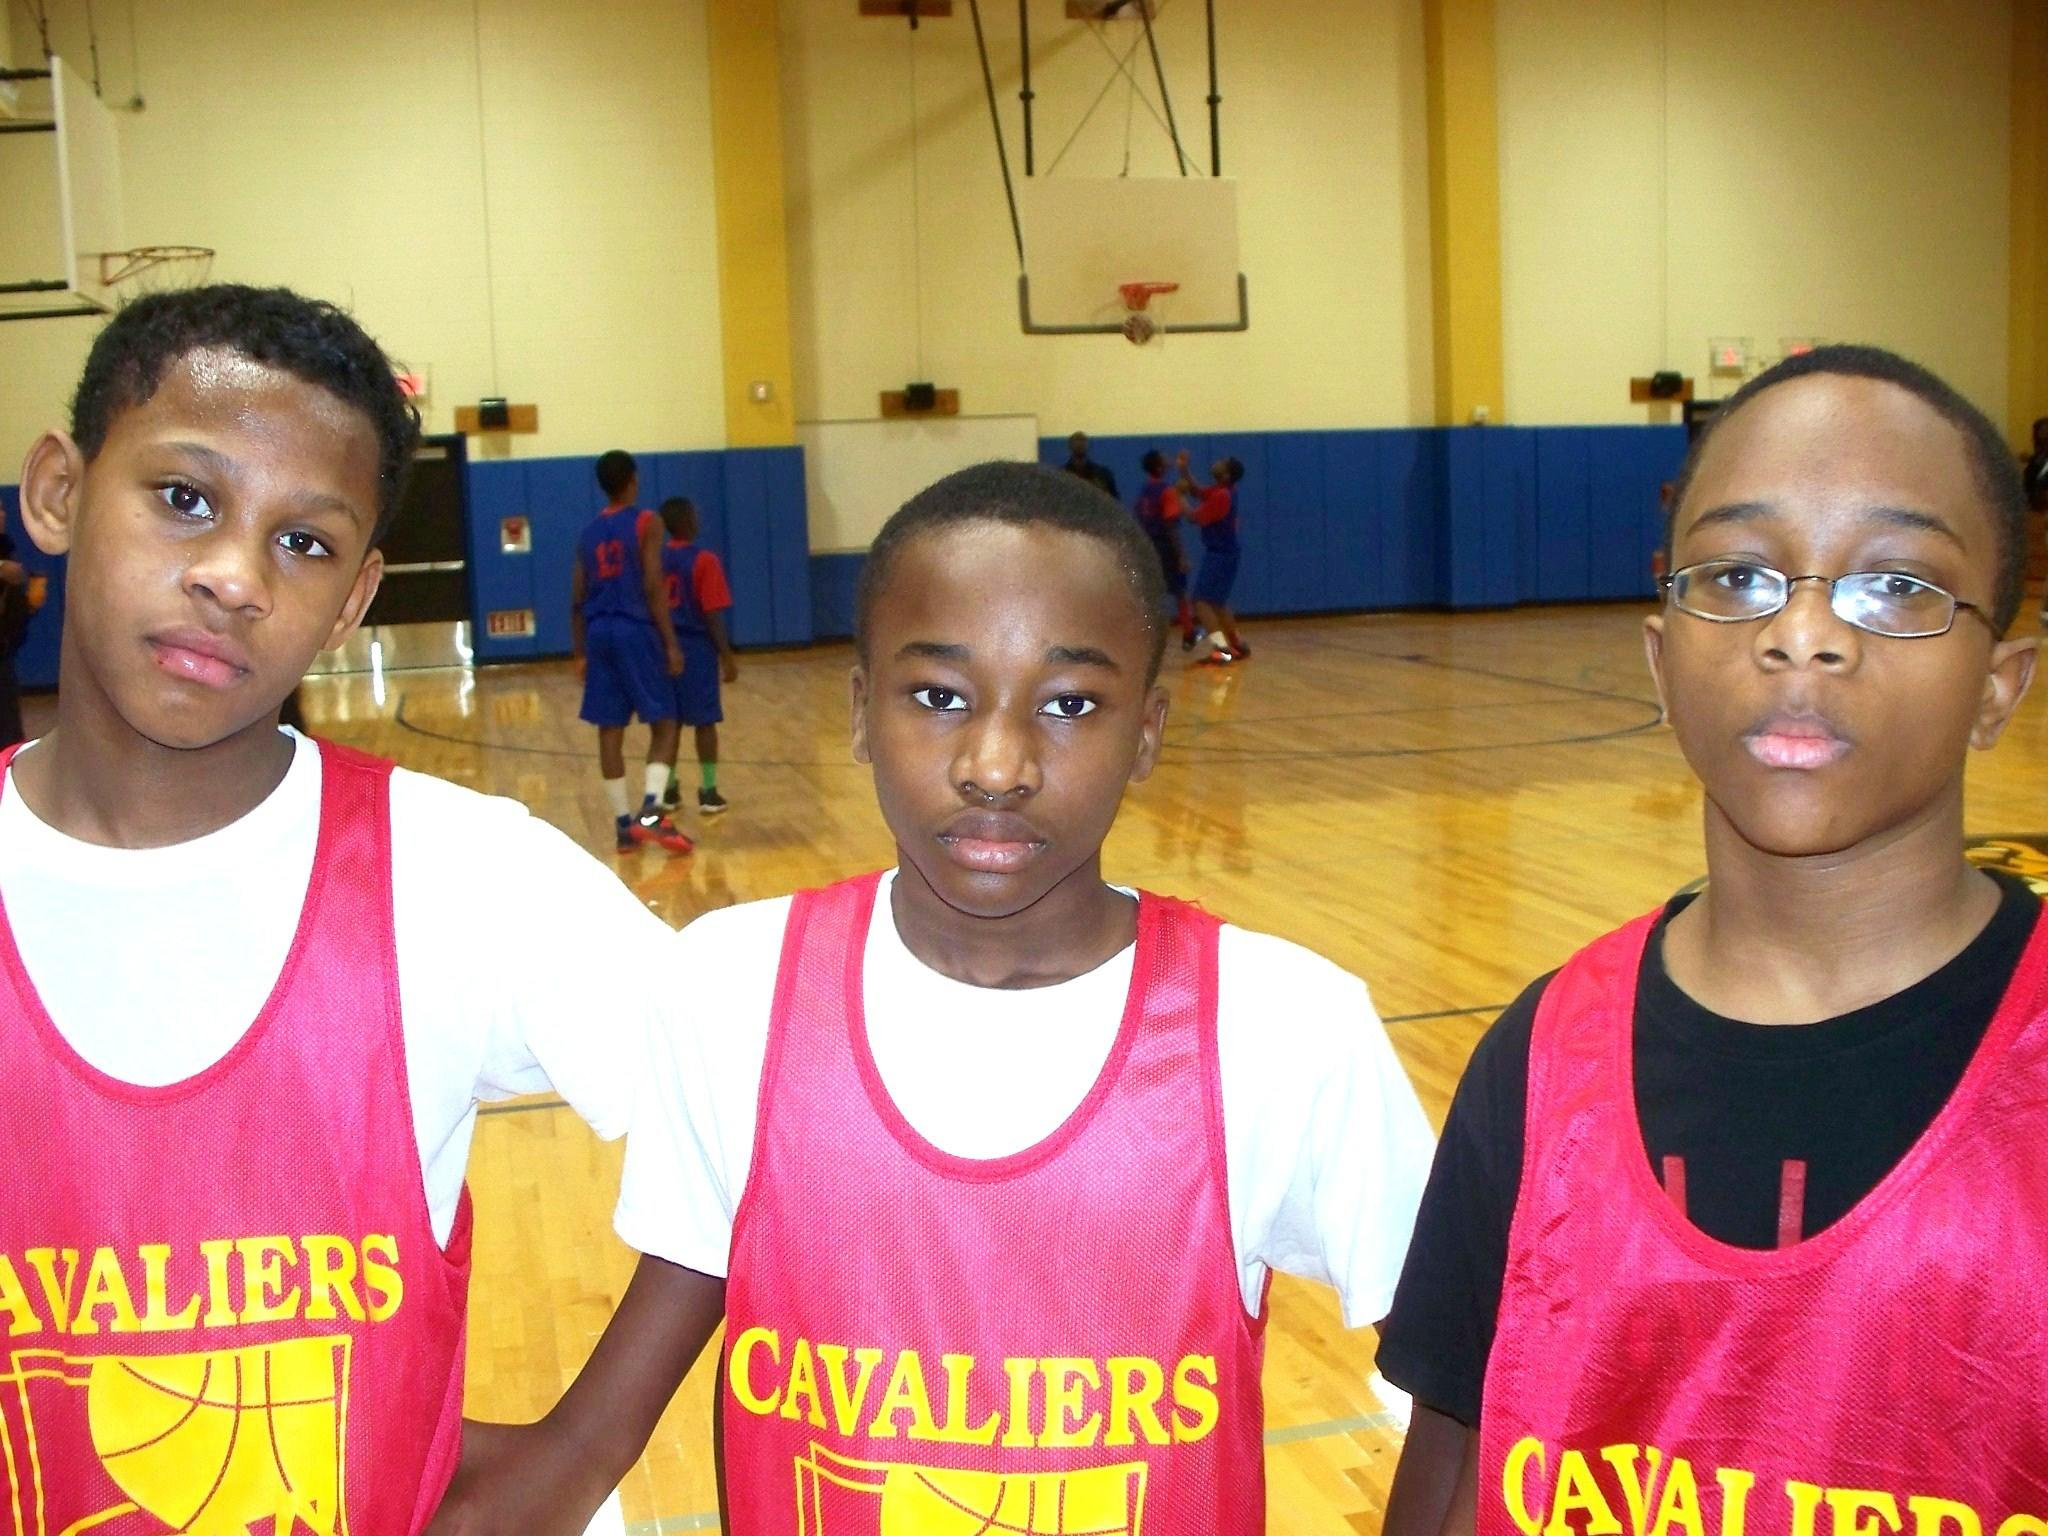 The BYBL 5th/6th grade division Cavaliers scored their first win of the 2014 season during week two of play. From left to right: Jalen Henry was the top scorer for the Cavs with 12 points, Jovan Hainsley added eight and Mitchell chipped in with four and scored the game winning basket in the second overtime period.